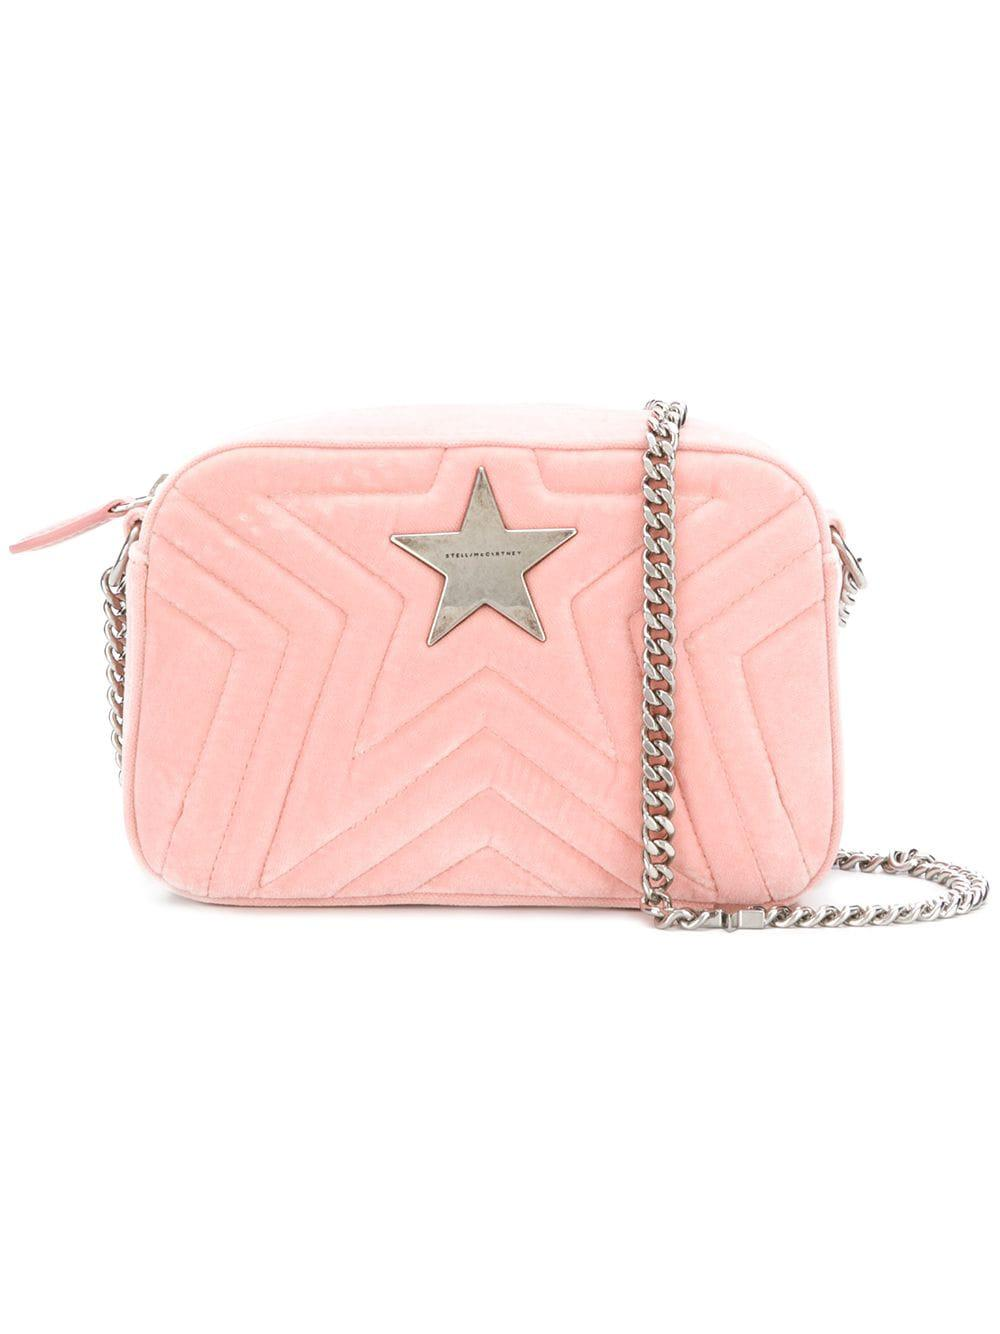 Stella Mccartney Stella Star Mini Shoulder Bag in Pink - Save ... d64fc7249996e